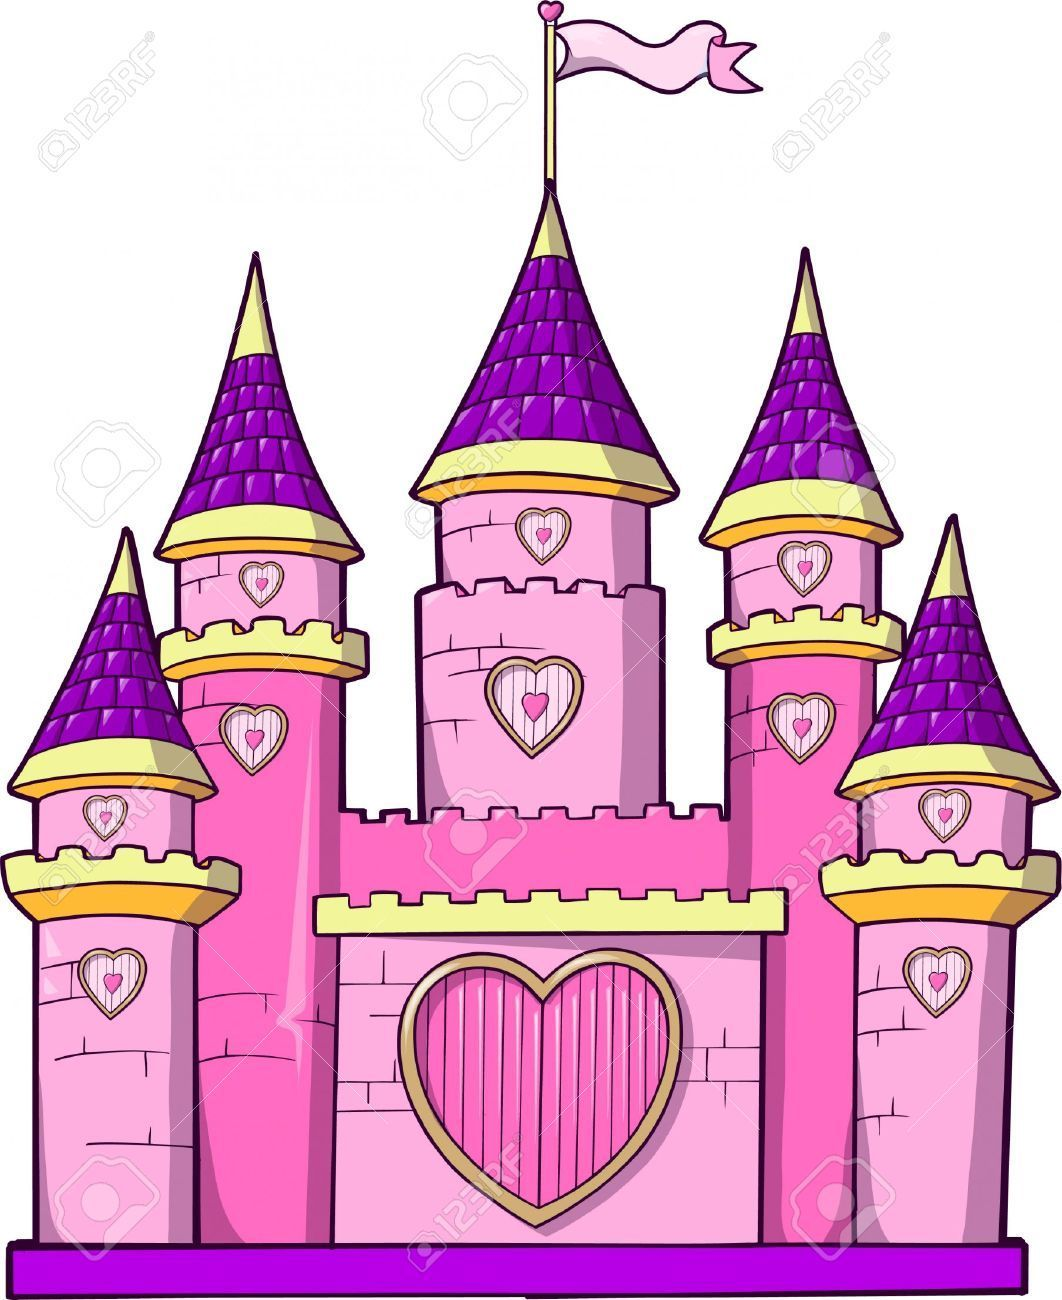 Castle clipart princess. Related keywords suggestions